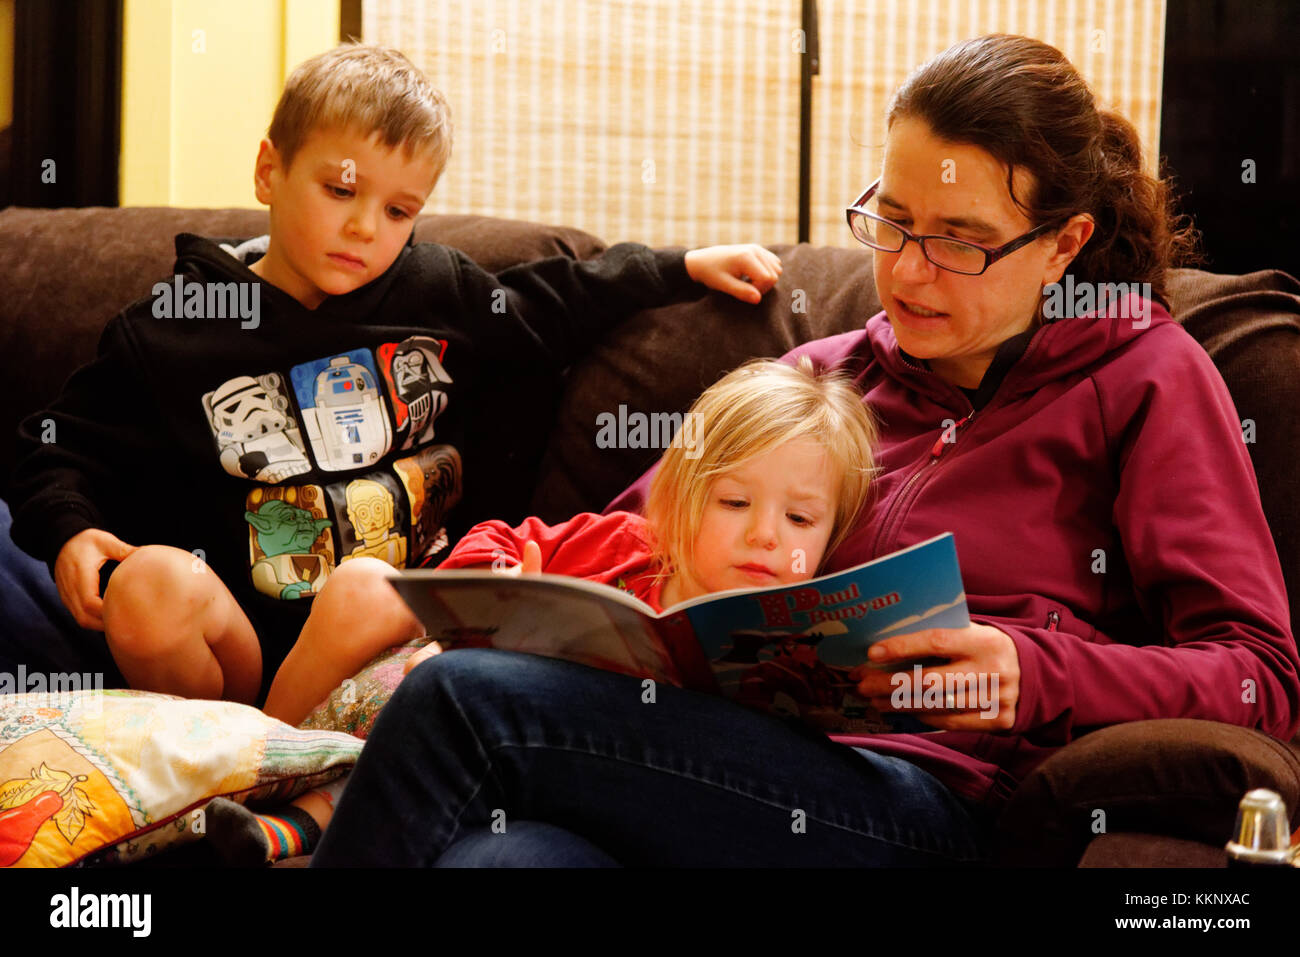 A mother reading out loud to her two young children (5 and 3 yrs old) - Stock Image